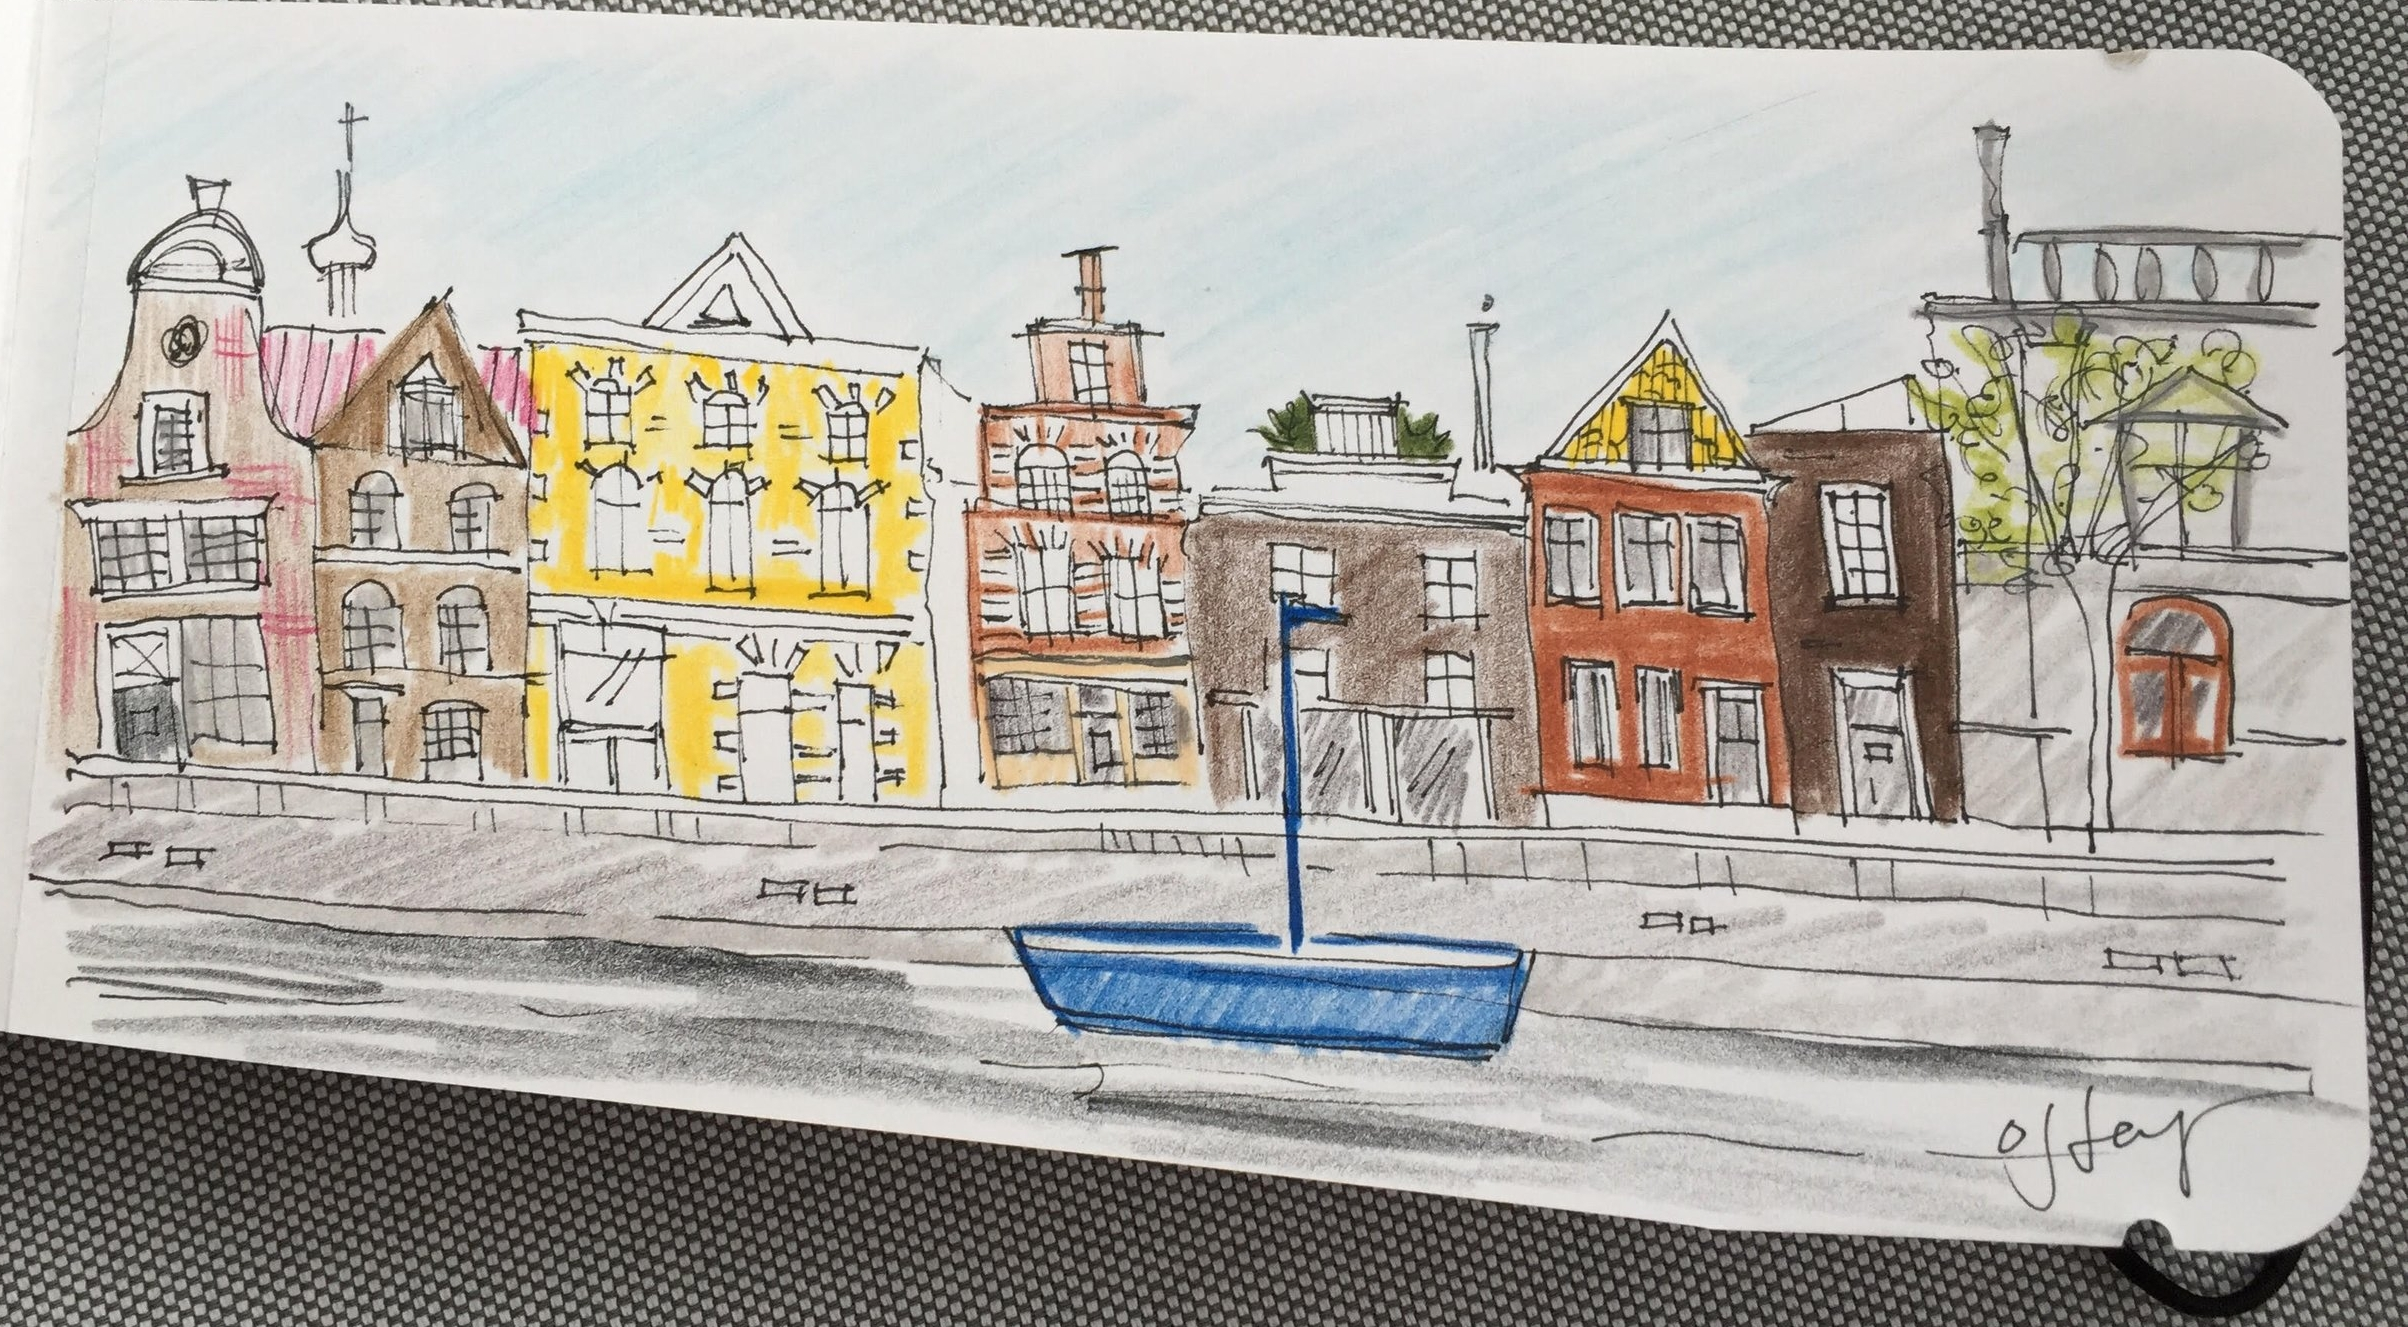 . . . Haarlem's canals . . .